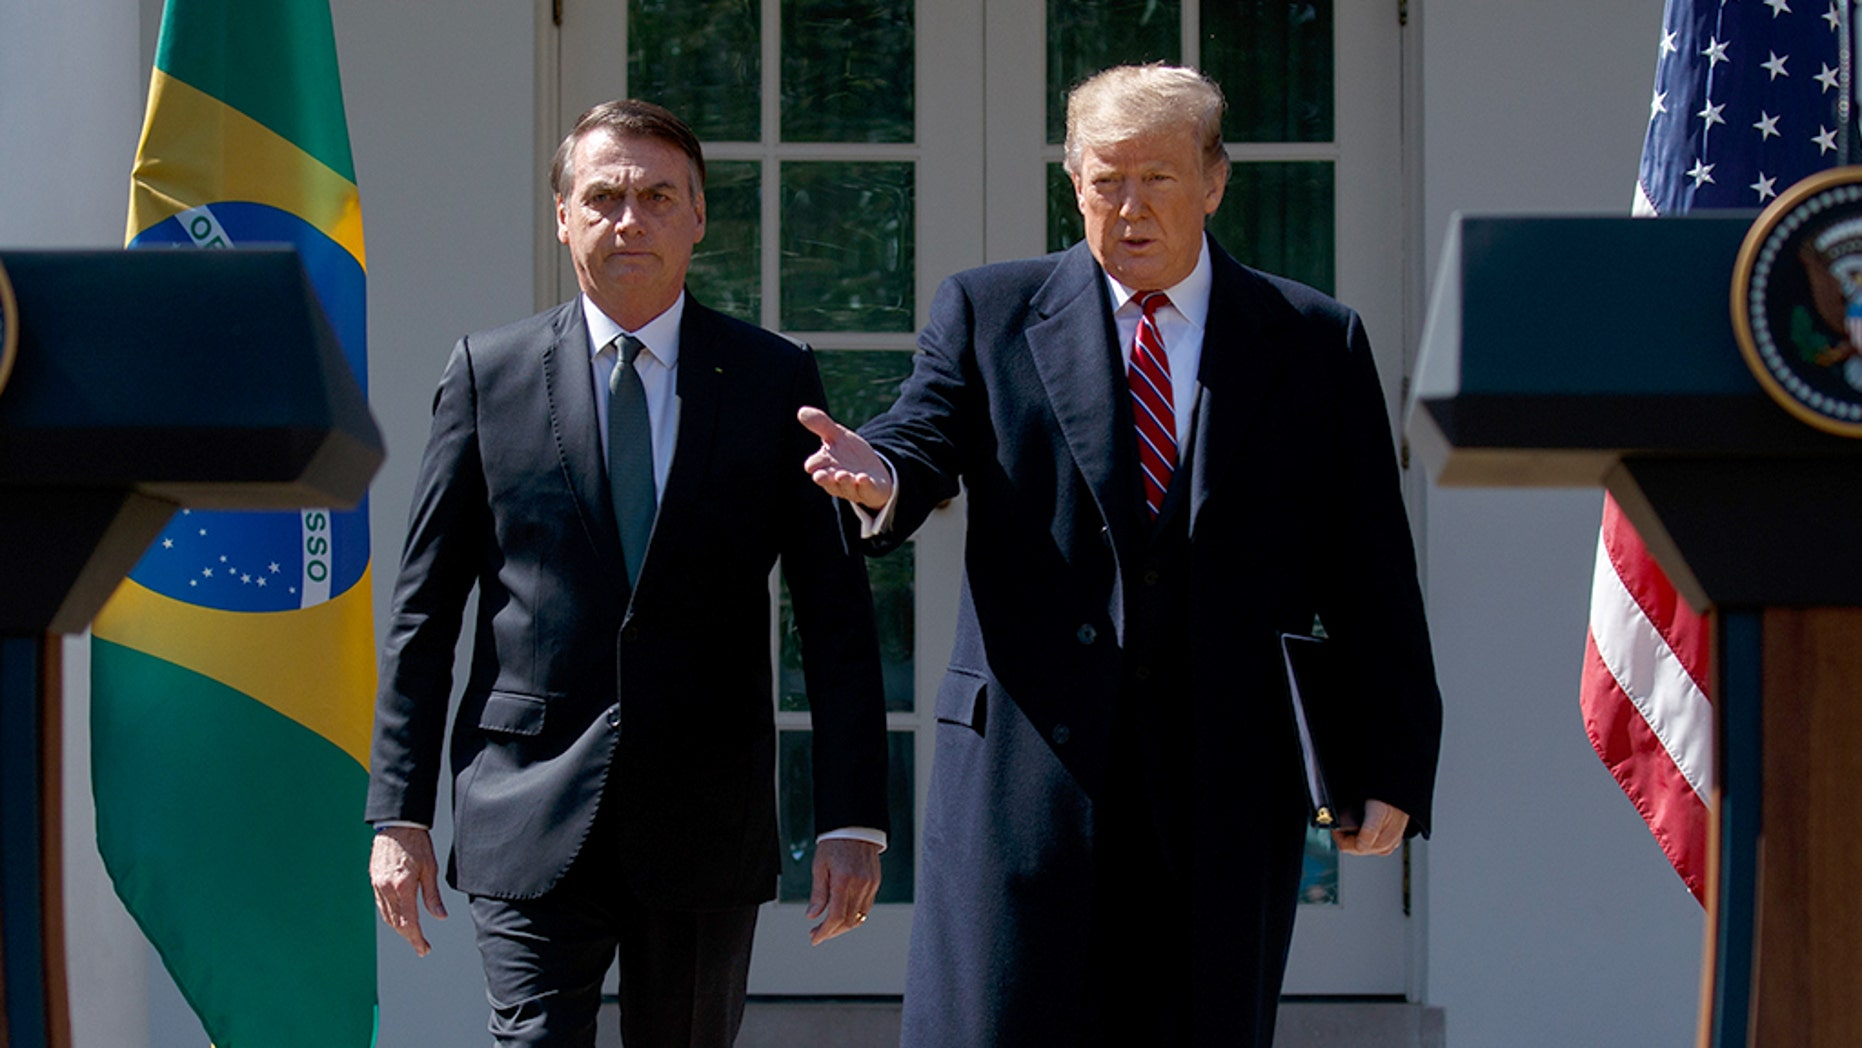 President Trump and Brazil's new far-right leader, President Jair Bolsonaro, arranged to sign several bilateral agreements, including one that allows the United States to use Brazil's Alcantara Aerospace Launch Base for its satellites. (AP Photo/Evan Vucci)